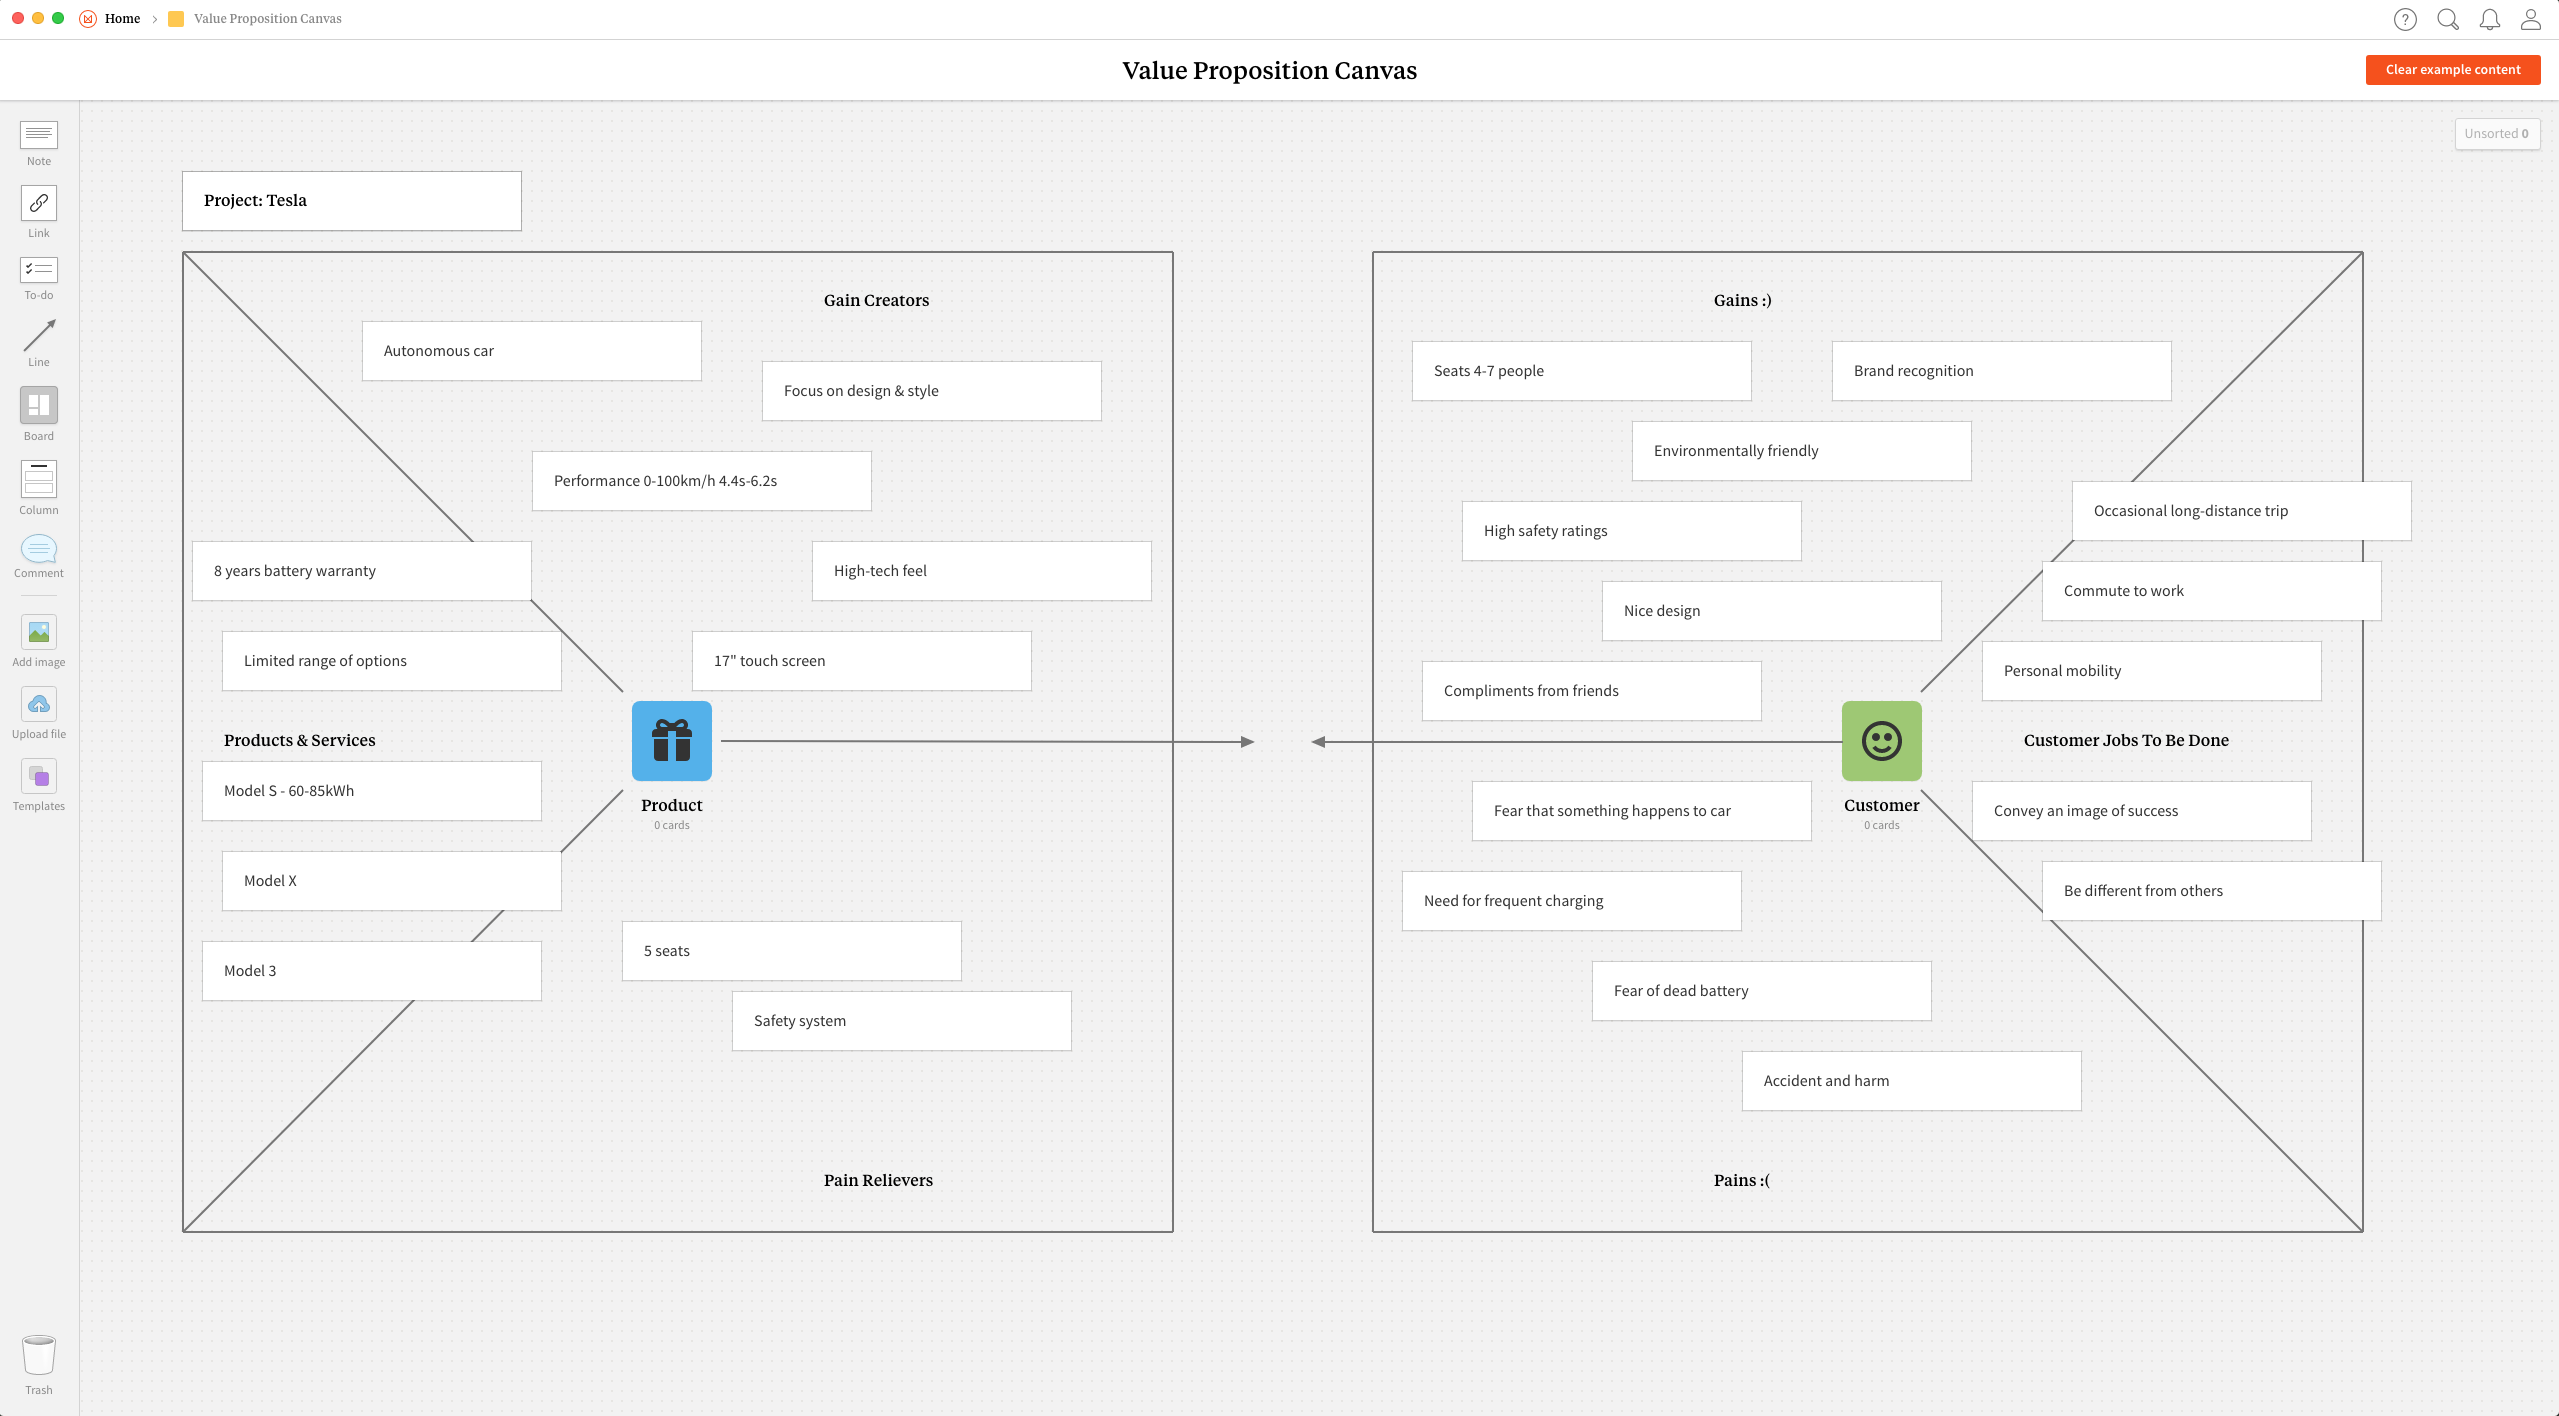 Completed Value Proposition Canvas template in Milanote app